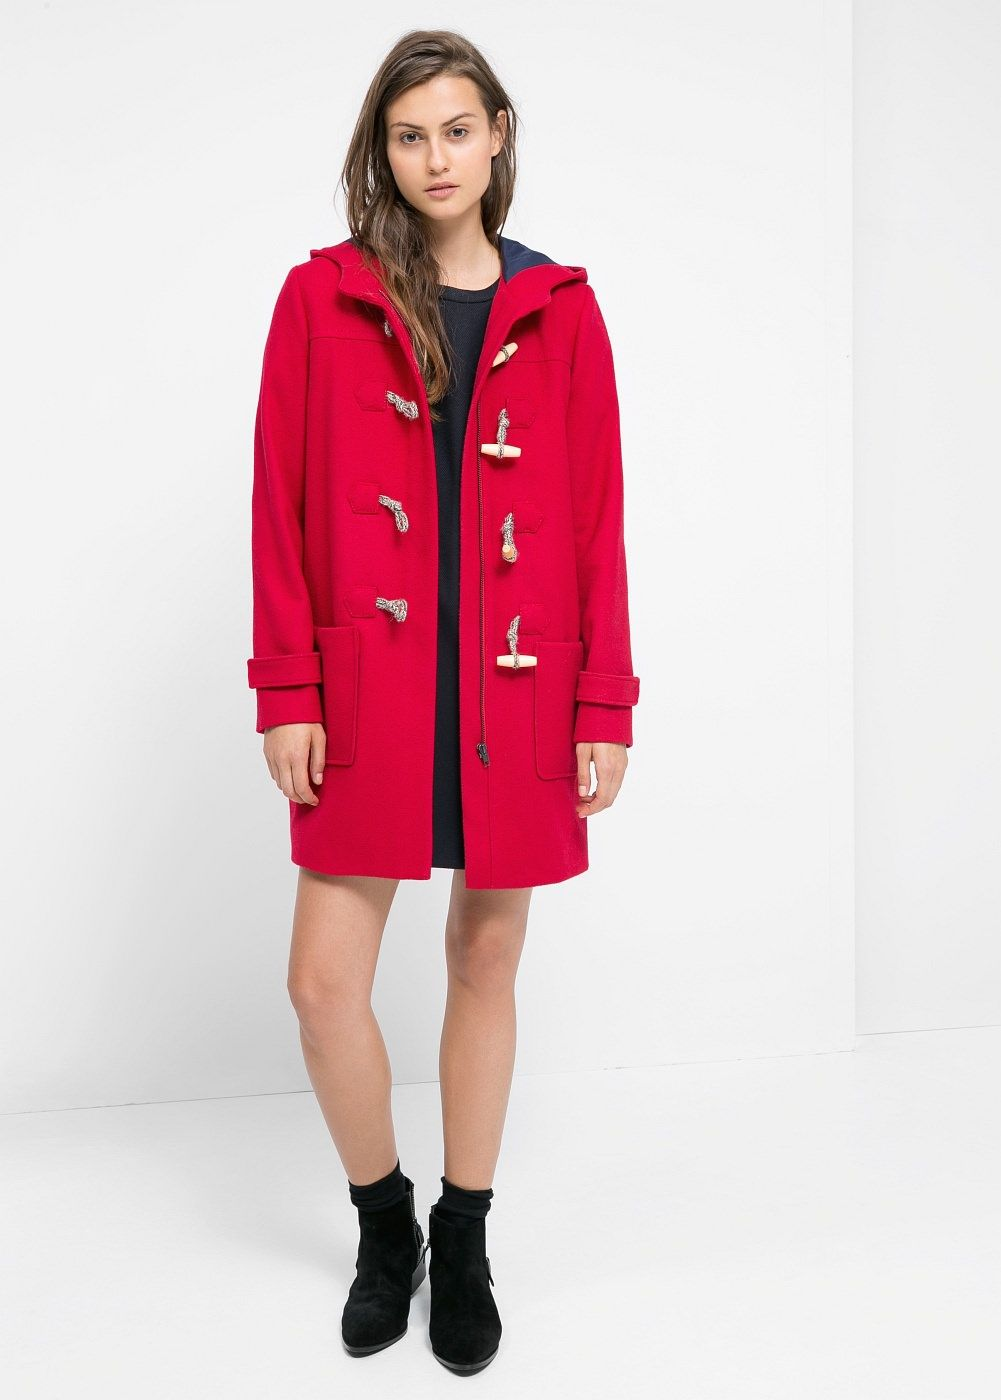 Wool-blend duffle coat | Duffle coat, Wool blend and Winter